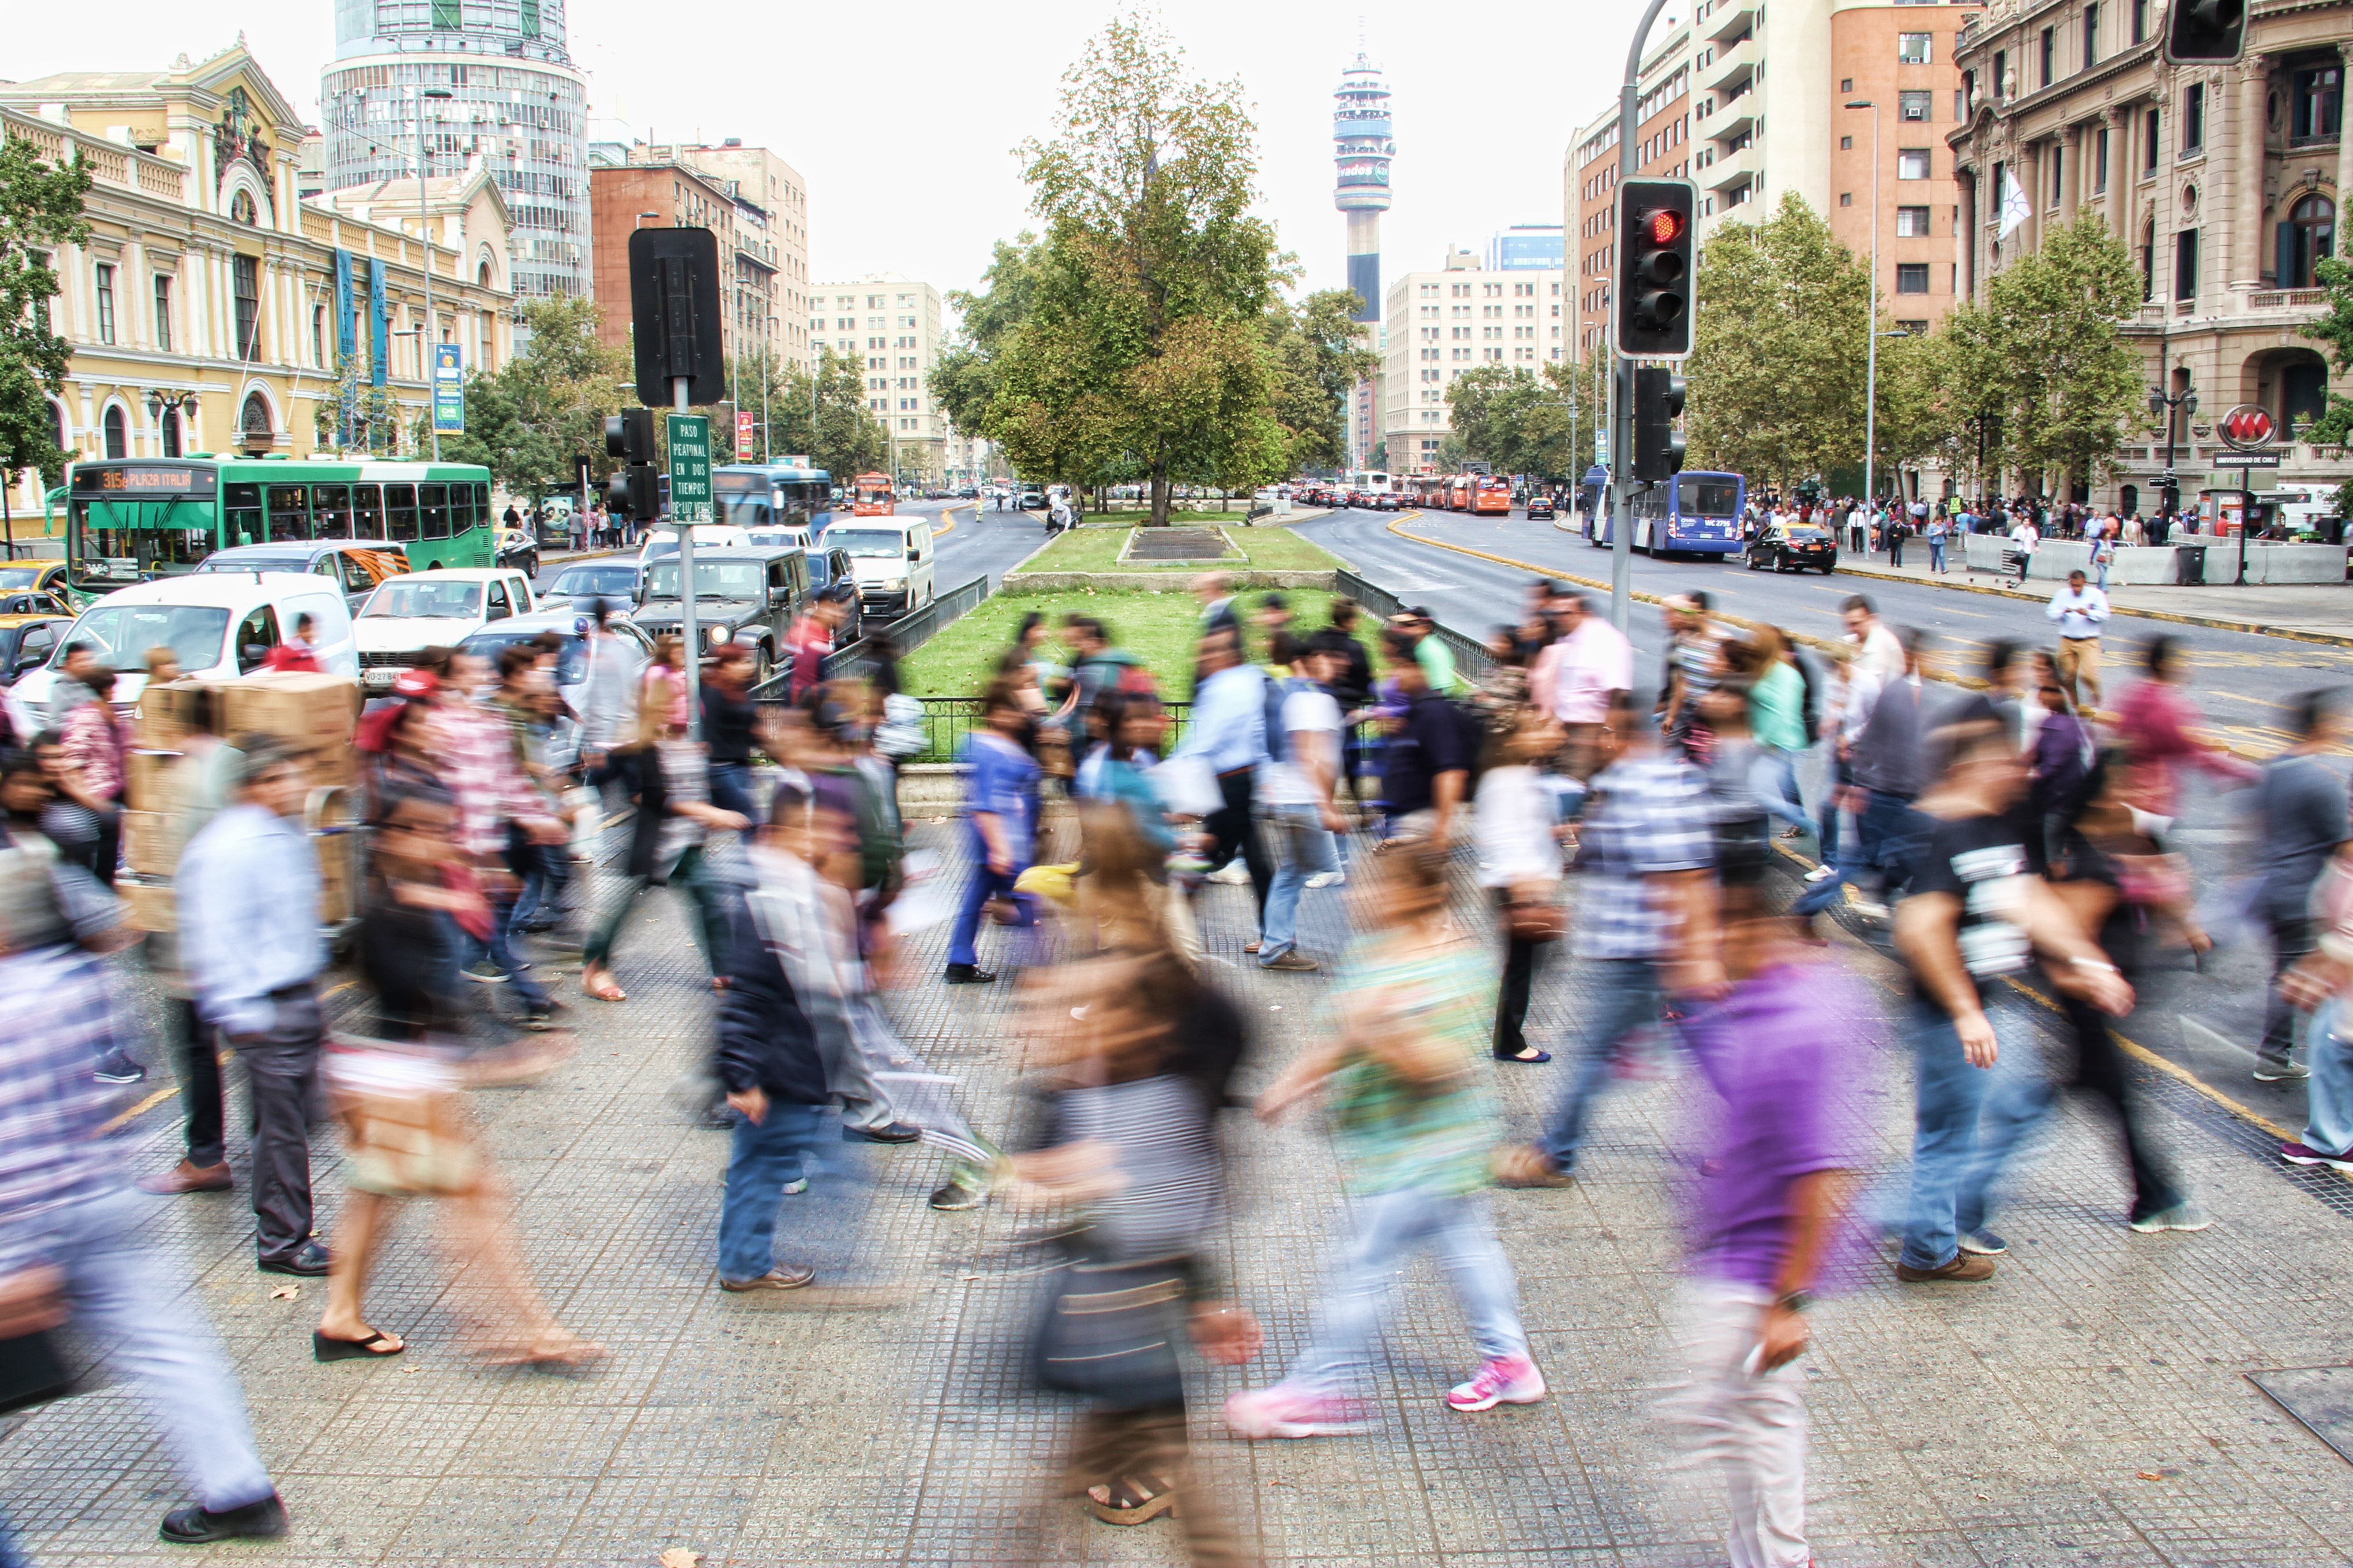 A long-exposure shot of a busy crosswalk in Santiago